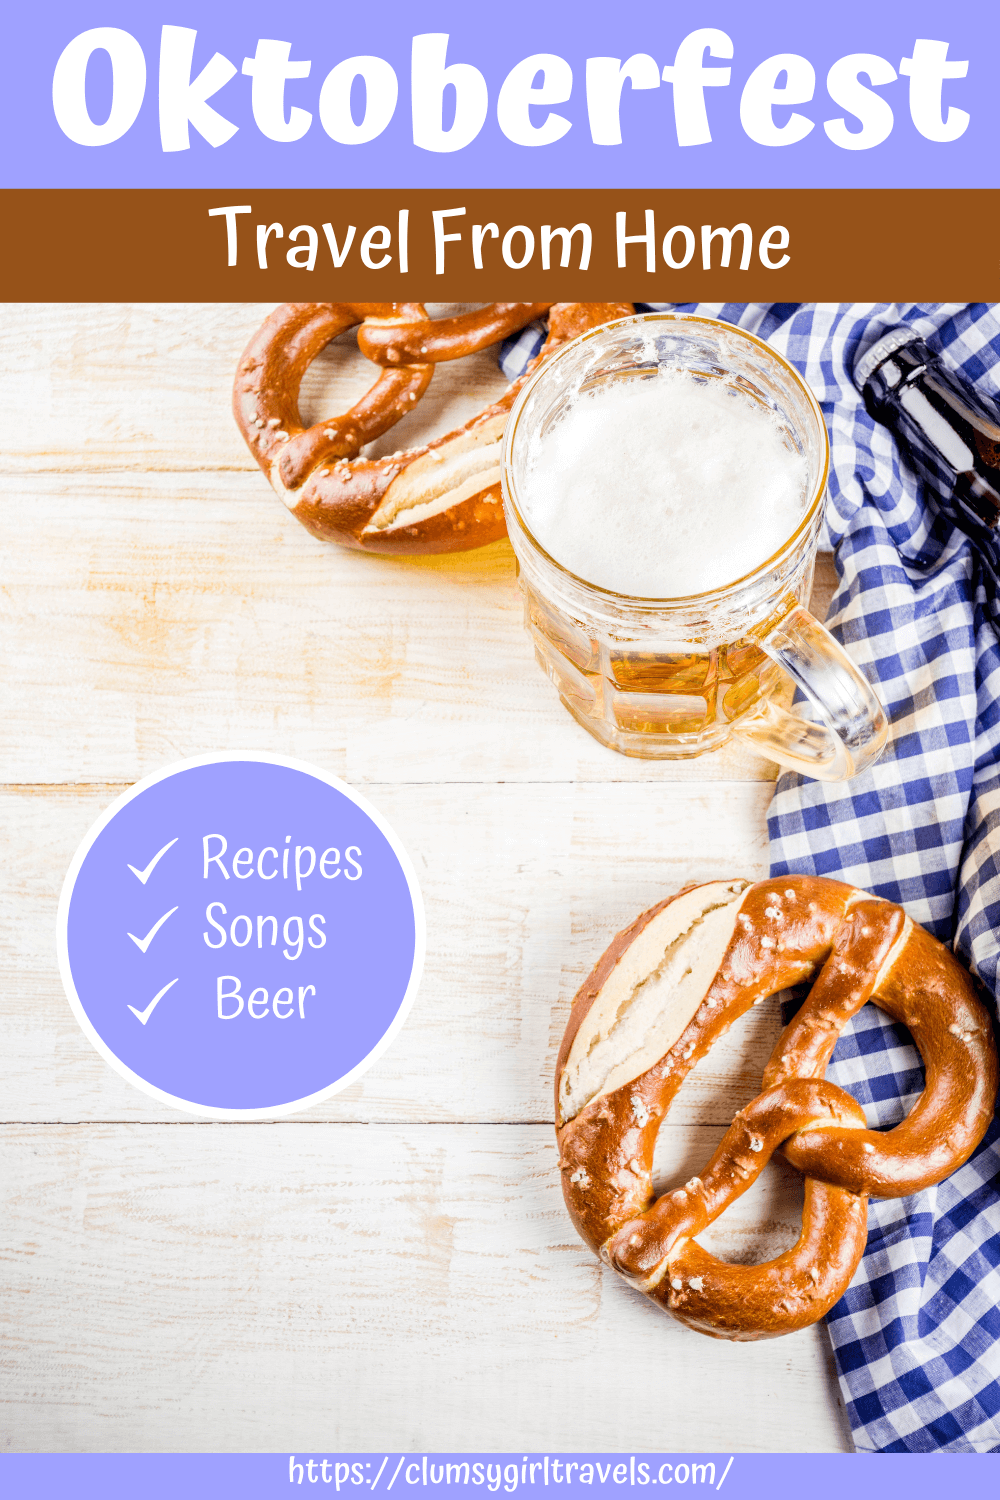 Celebrate Oktoberfest at home with this Oktoberfest virtual guide. Make recipes, drink beer and sing songs at the tops of your lungs.